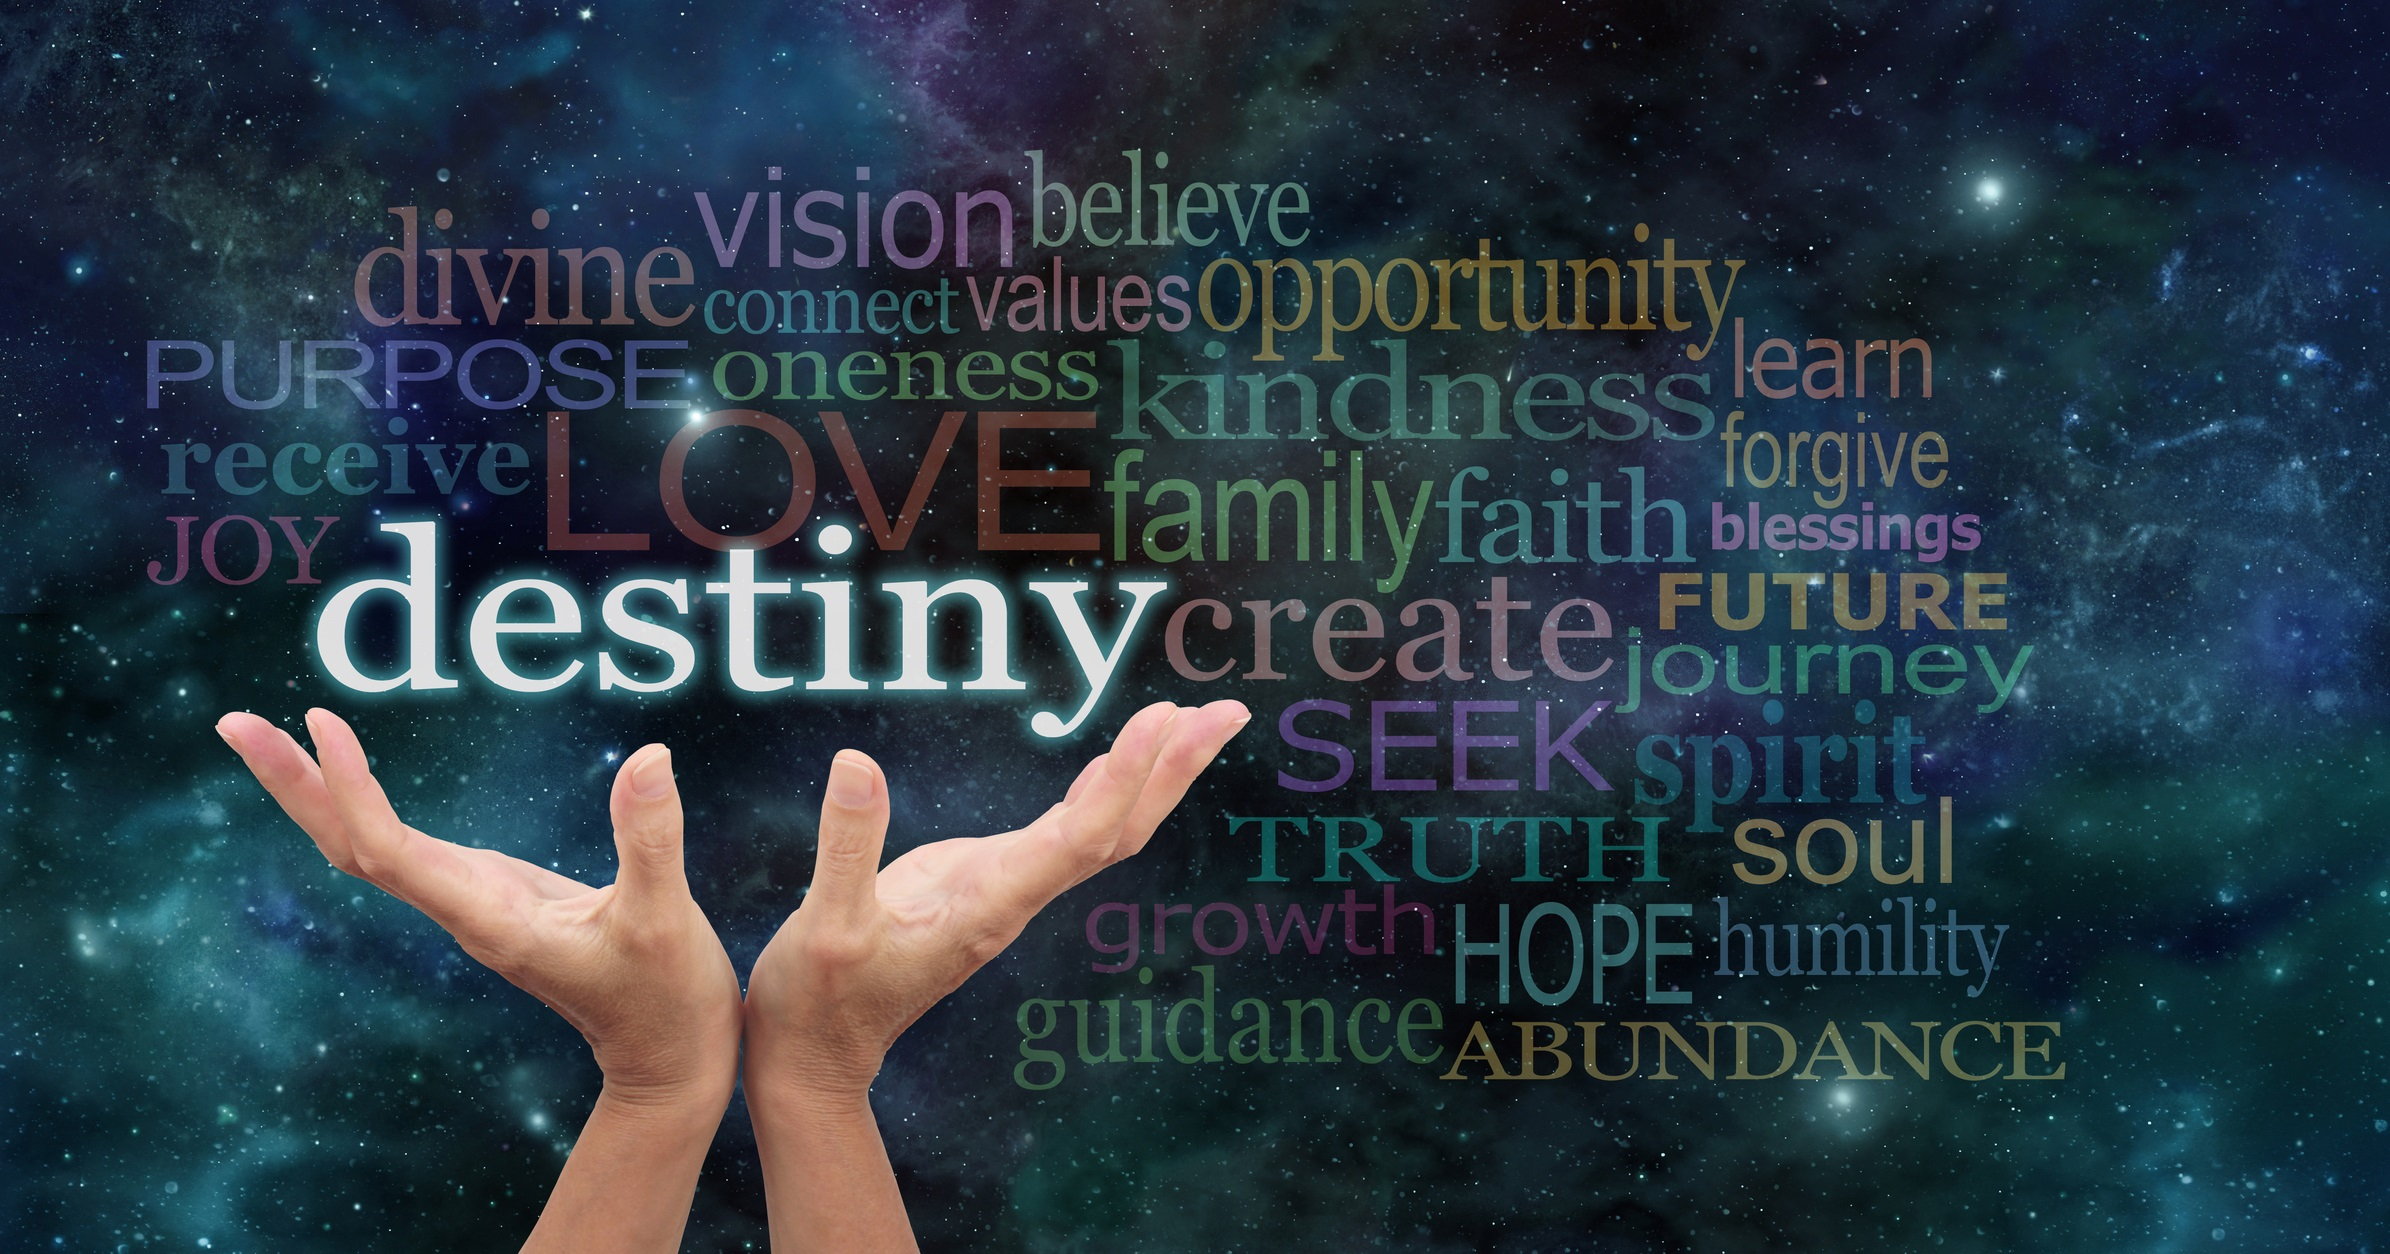 Female hands reaching up into the night sky with the word 'destiny' floating above, surrounded by a word cloud of wise words